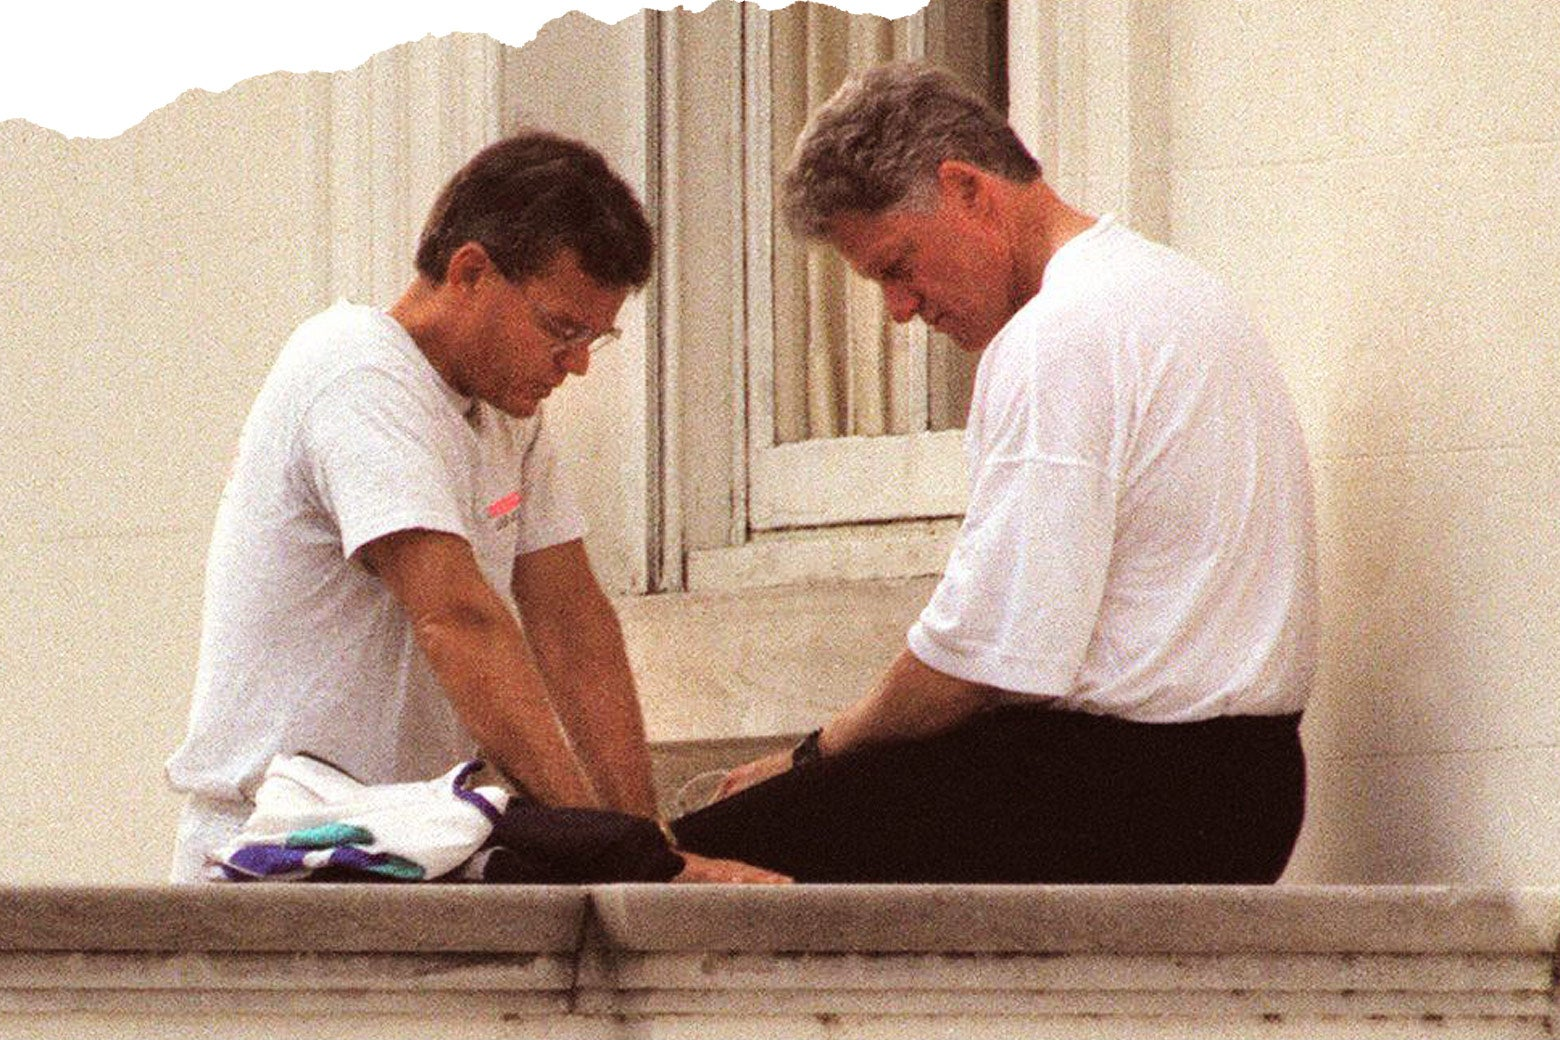 Bill Hybels and President Bill Clinton, heads bowed in pray.